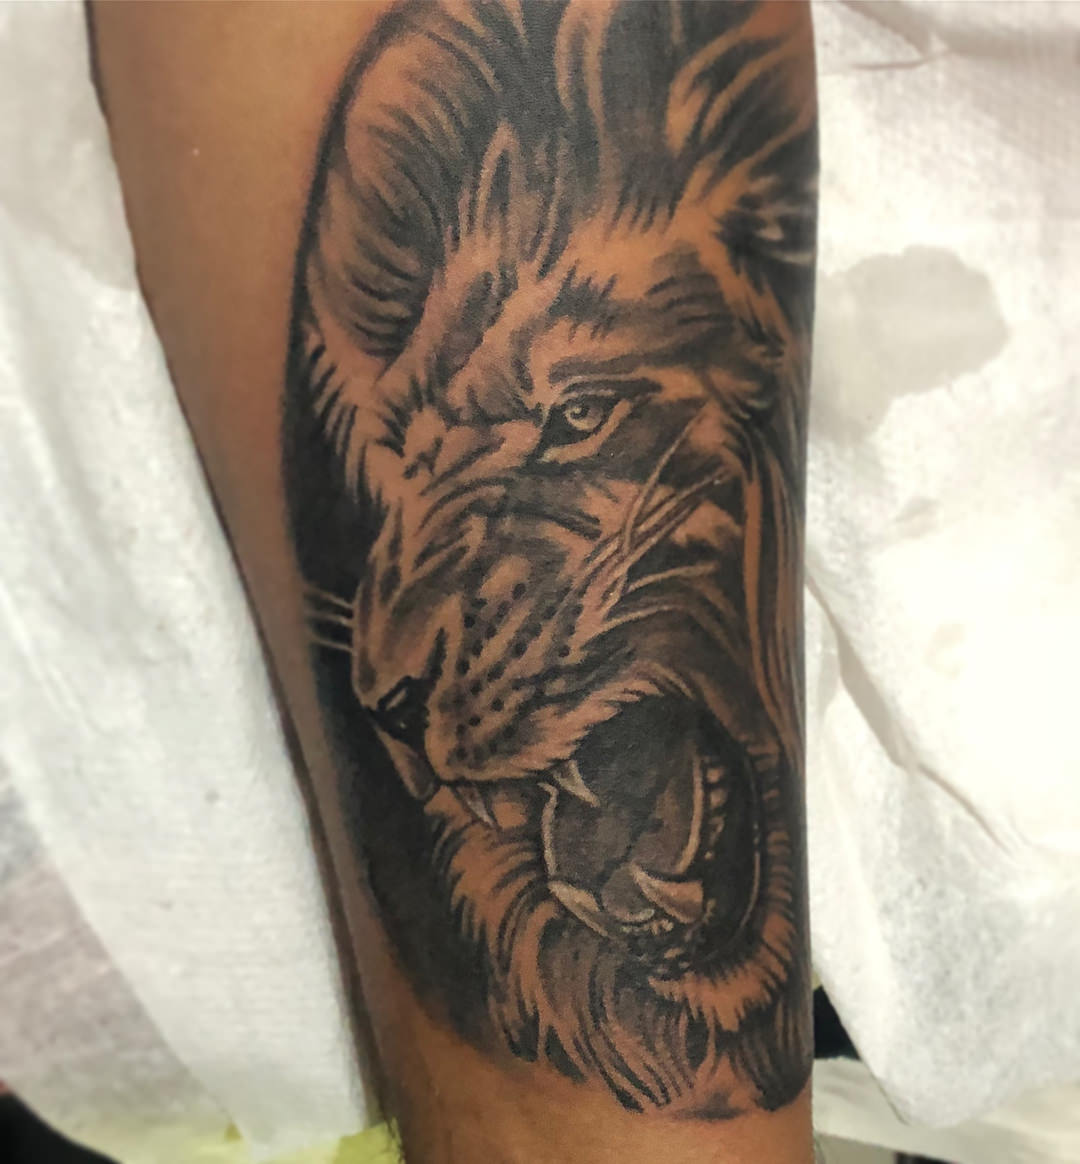 20e1bd850 While most dotwork lion tattoos are simple, you can make your design more  complex and larger.